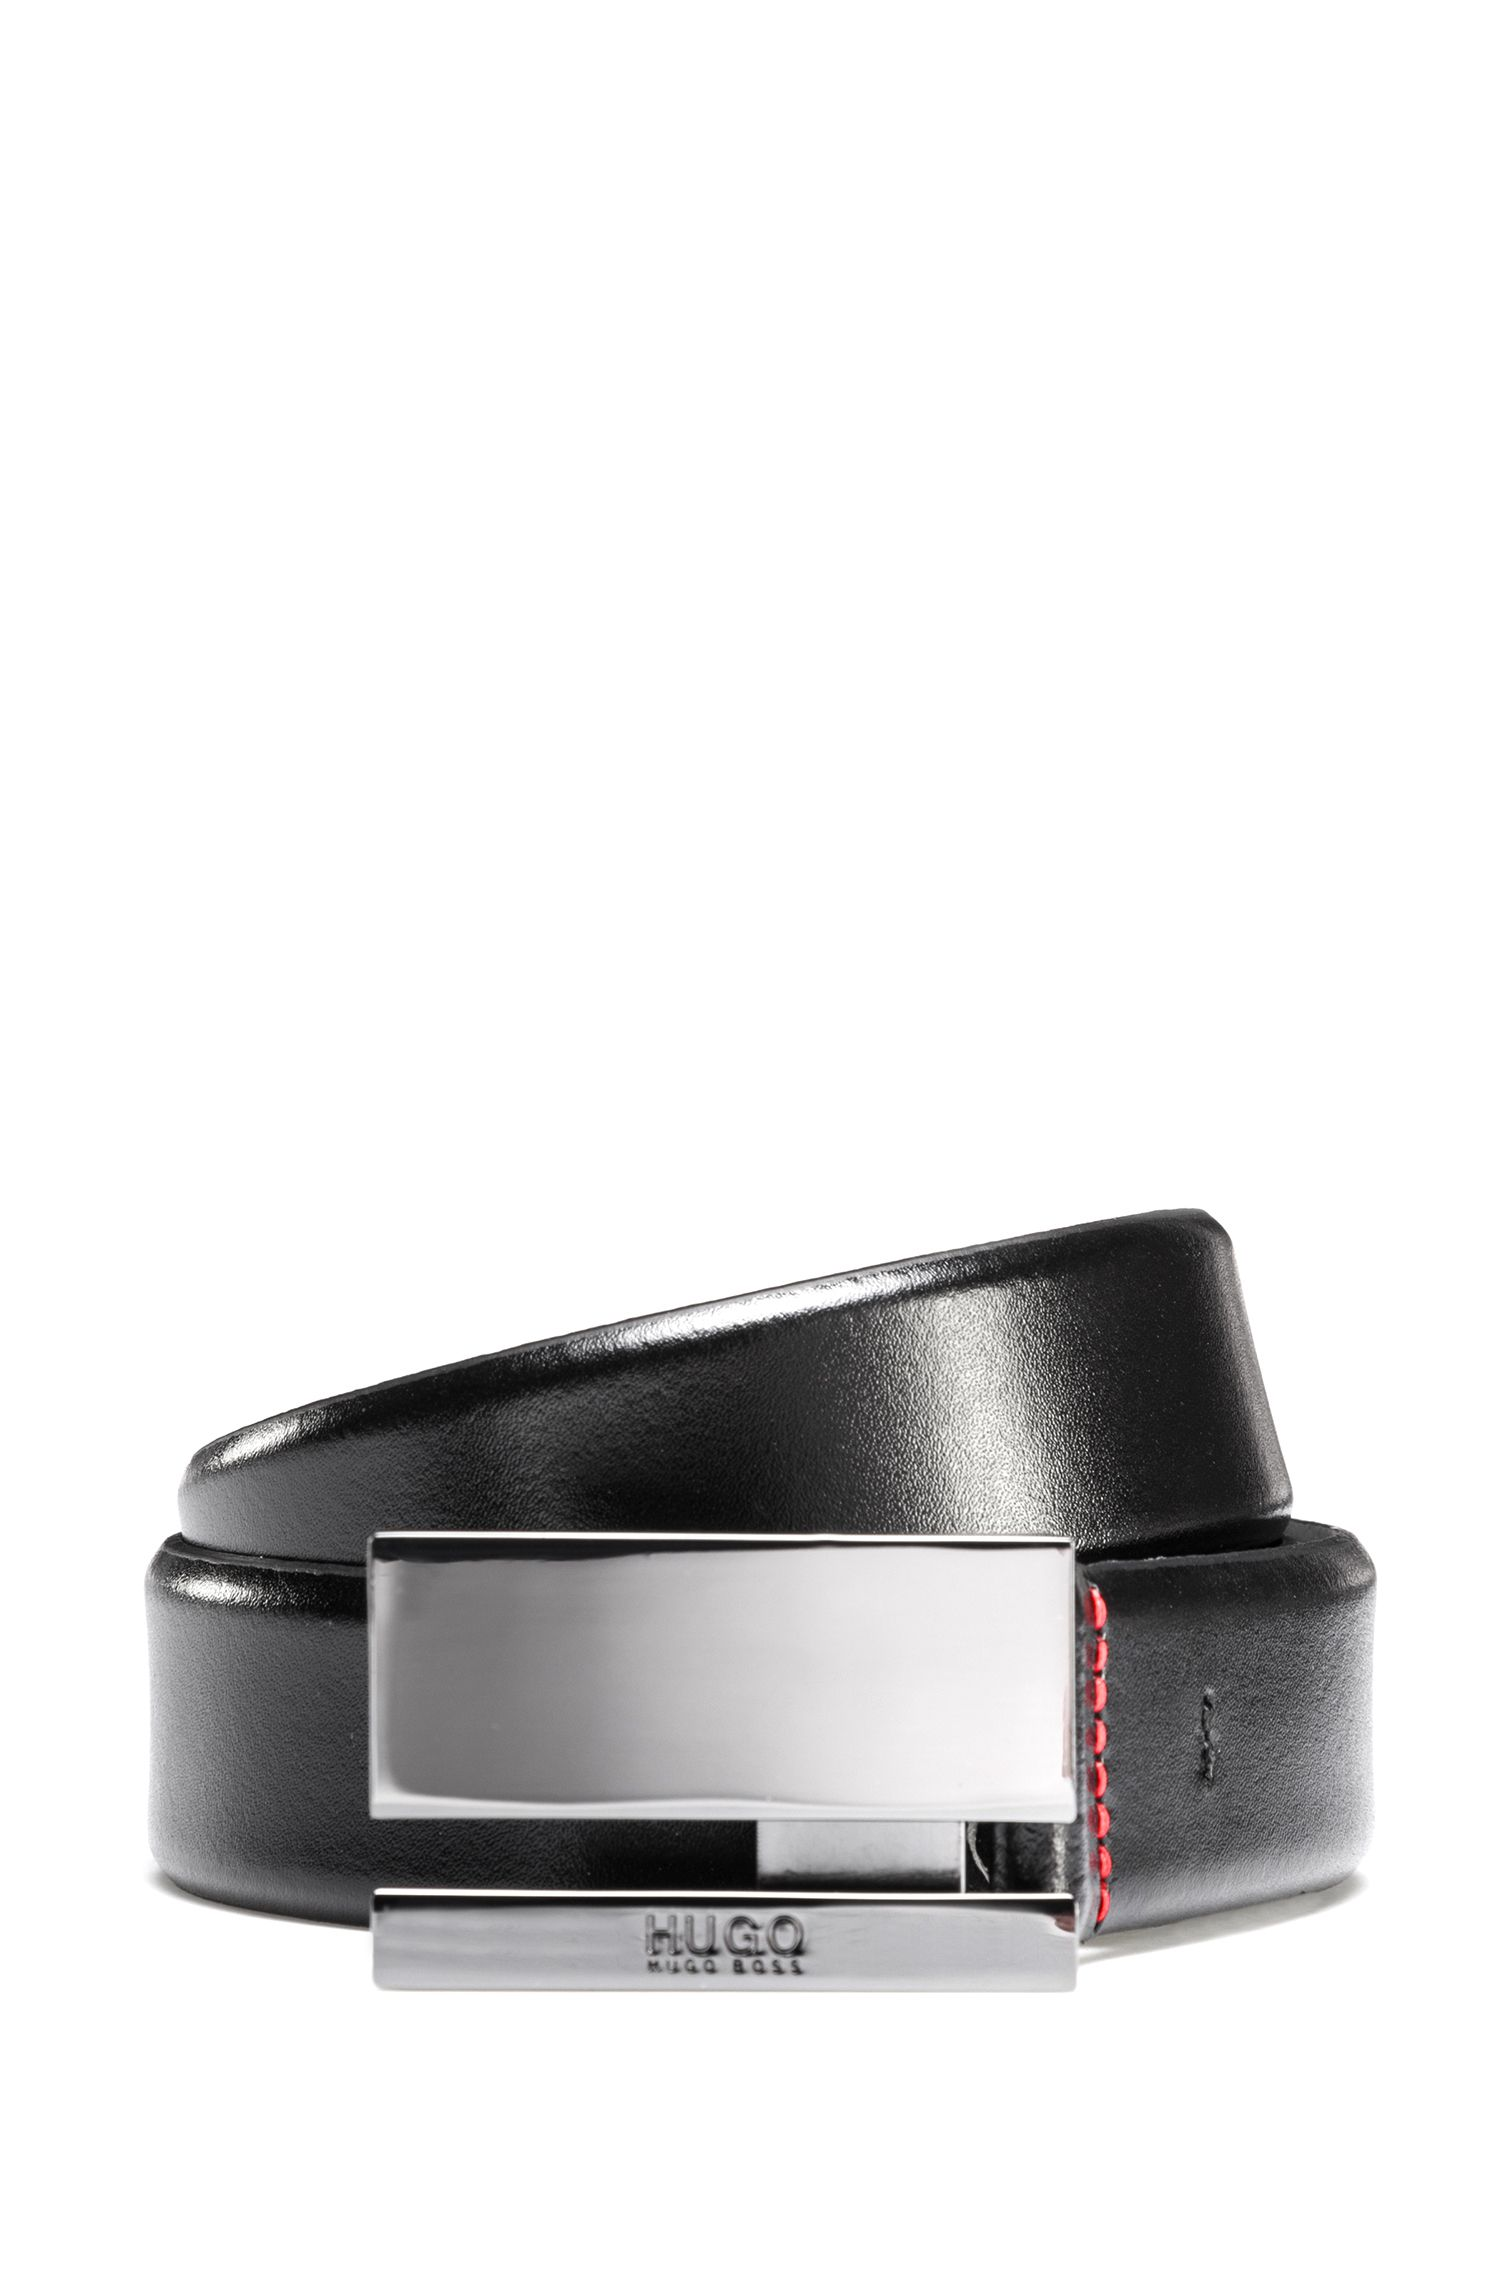 Smooth leather belt with polished gunmetal plaque buckle, Black